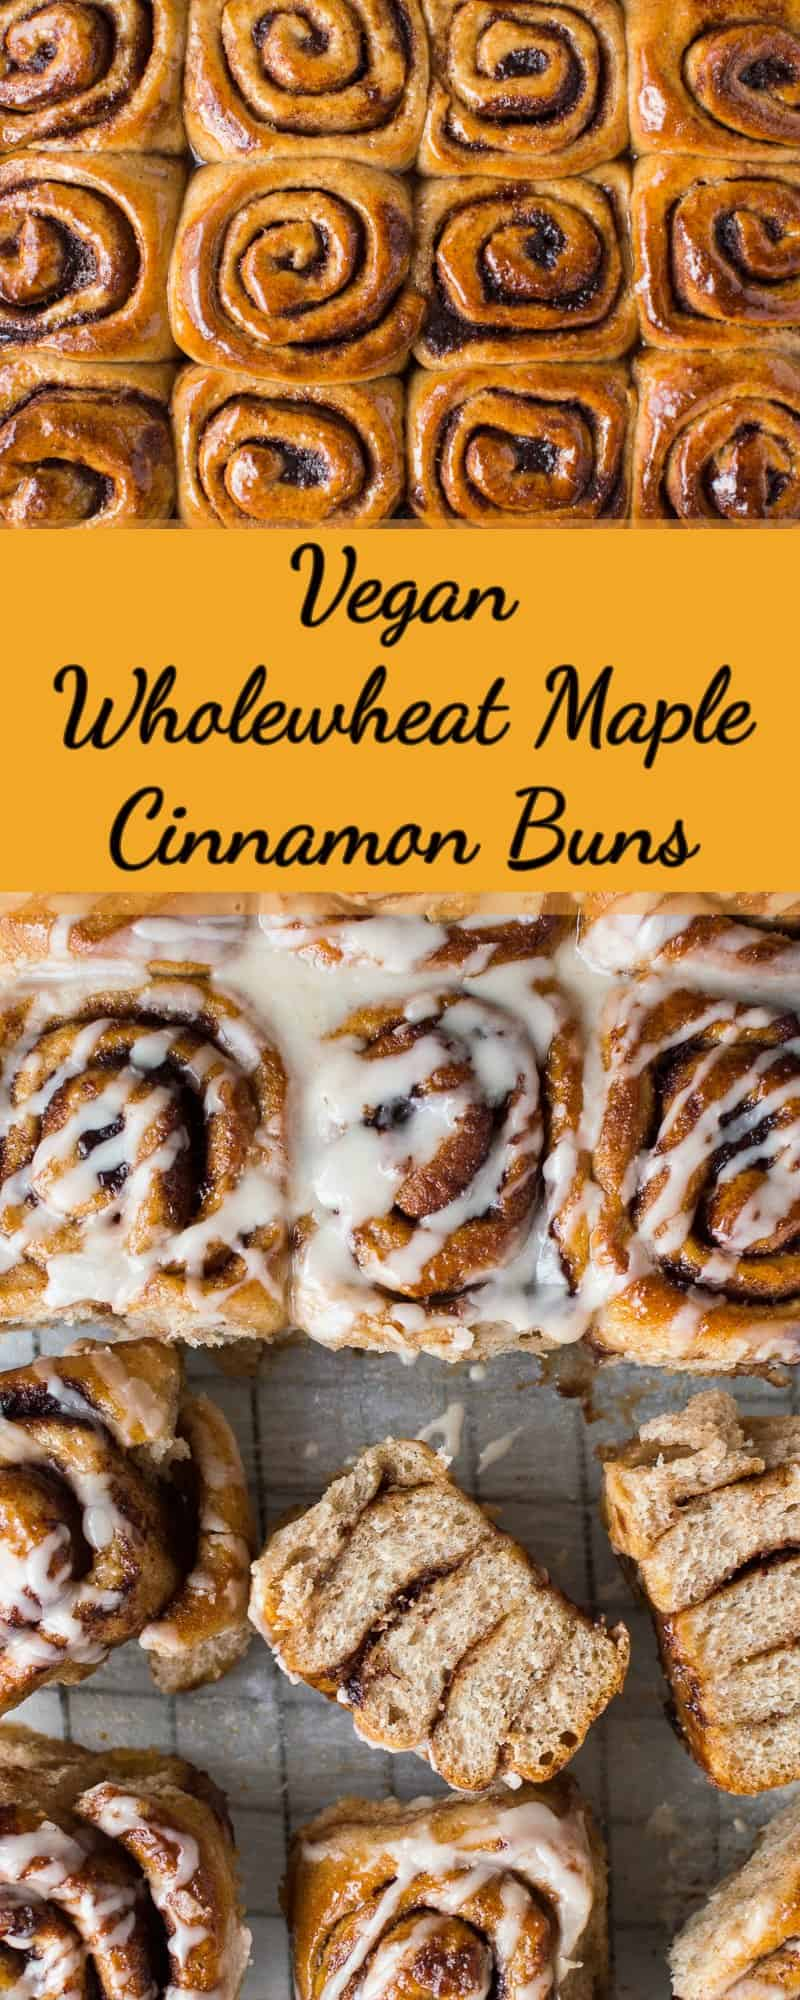 Vegan wholewheat maple cinnamon buns pinterest